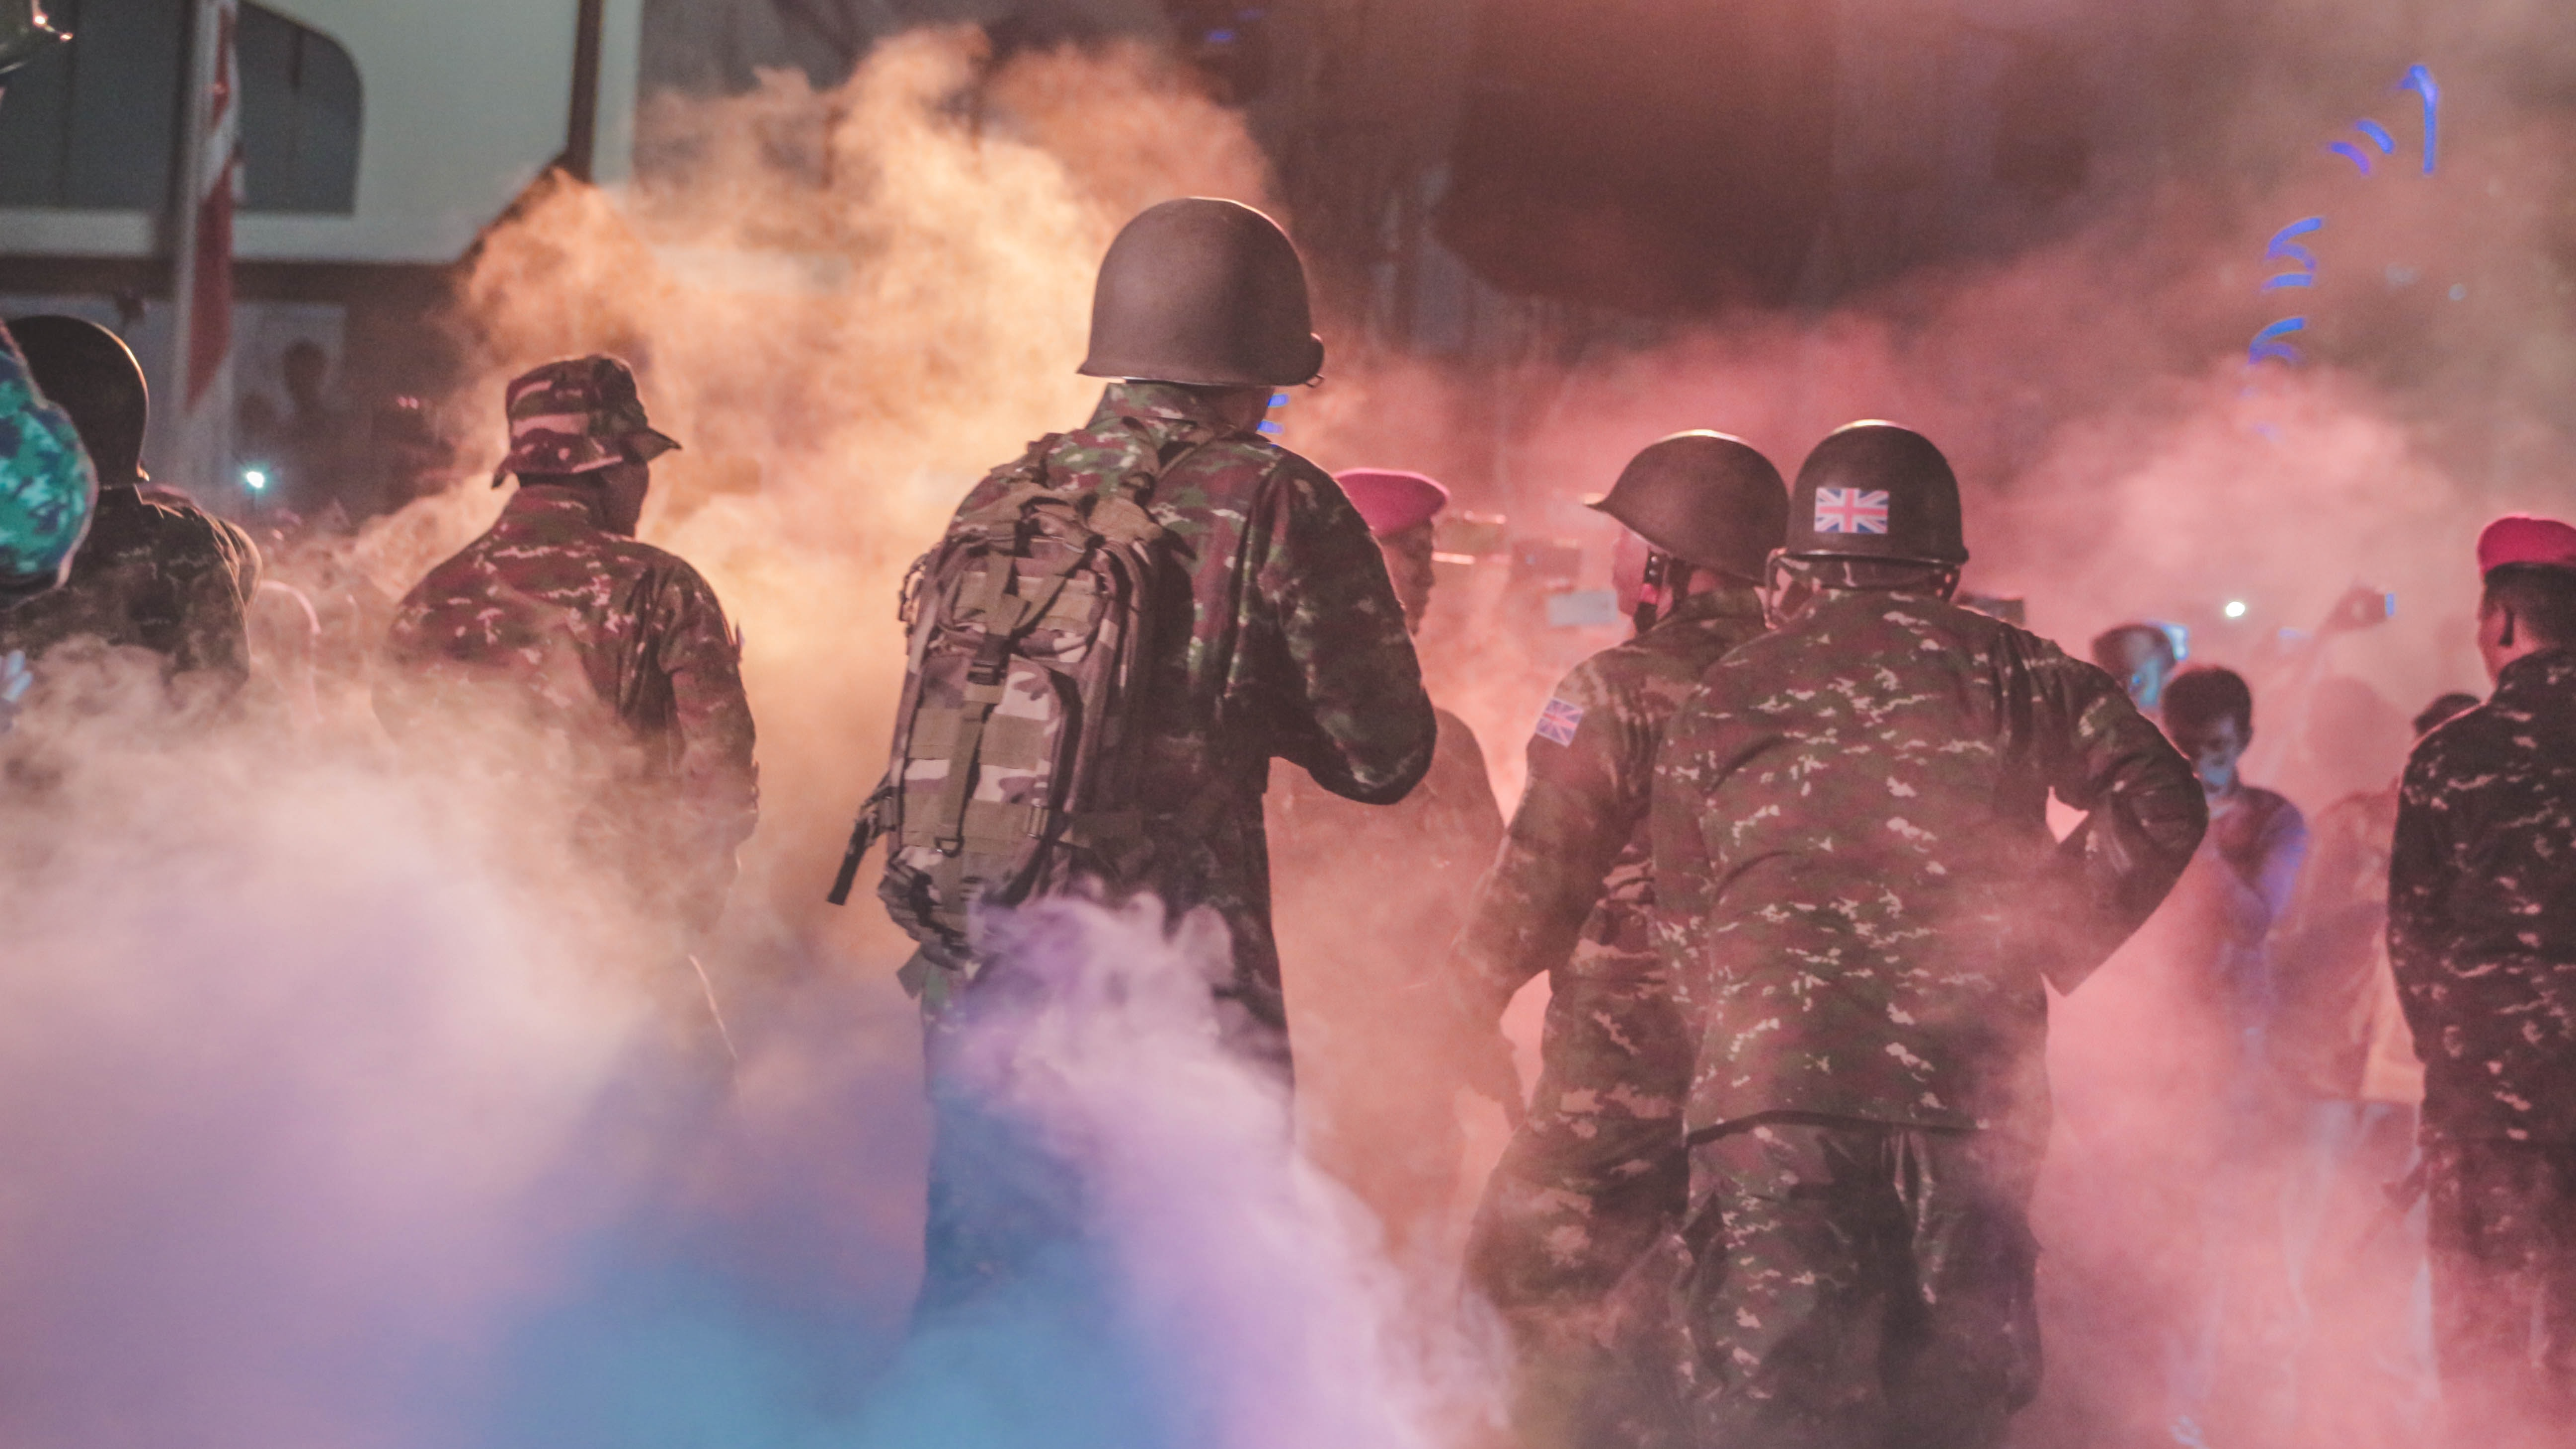 soldiers against crowd of people with smoke trail